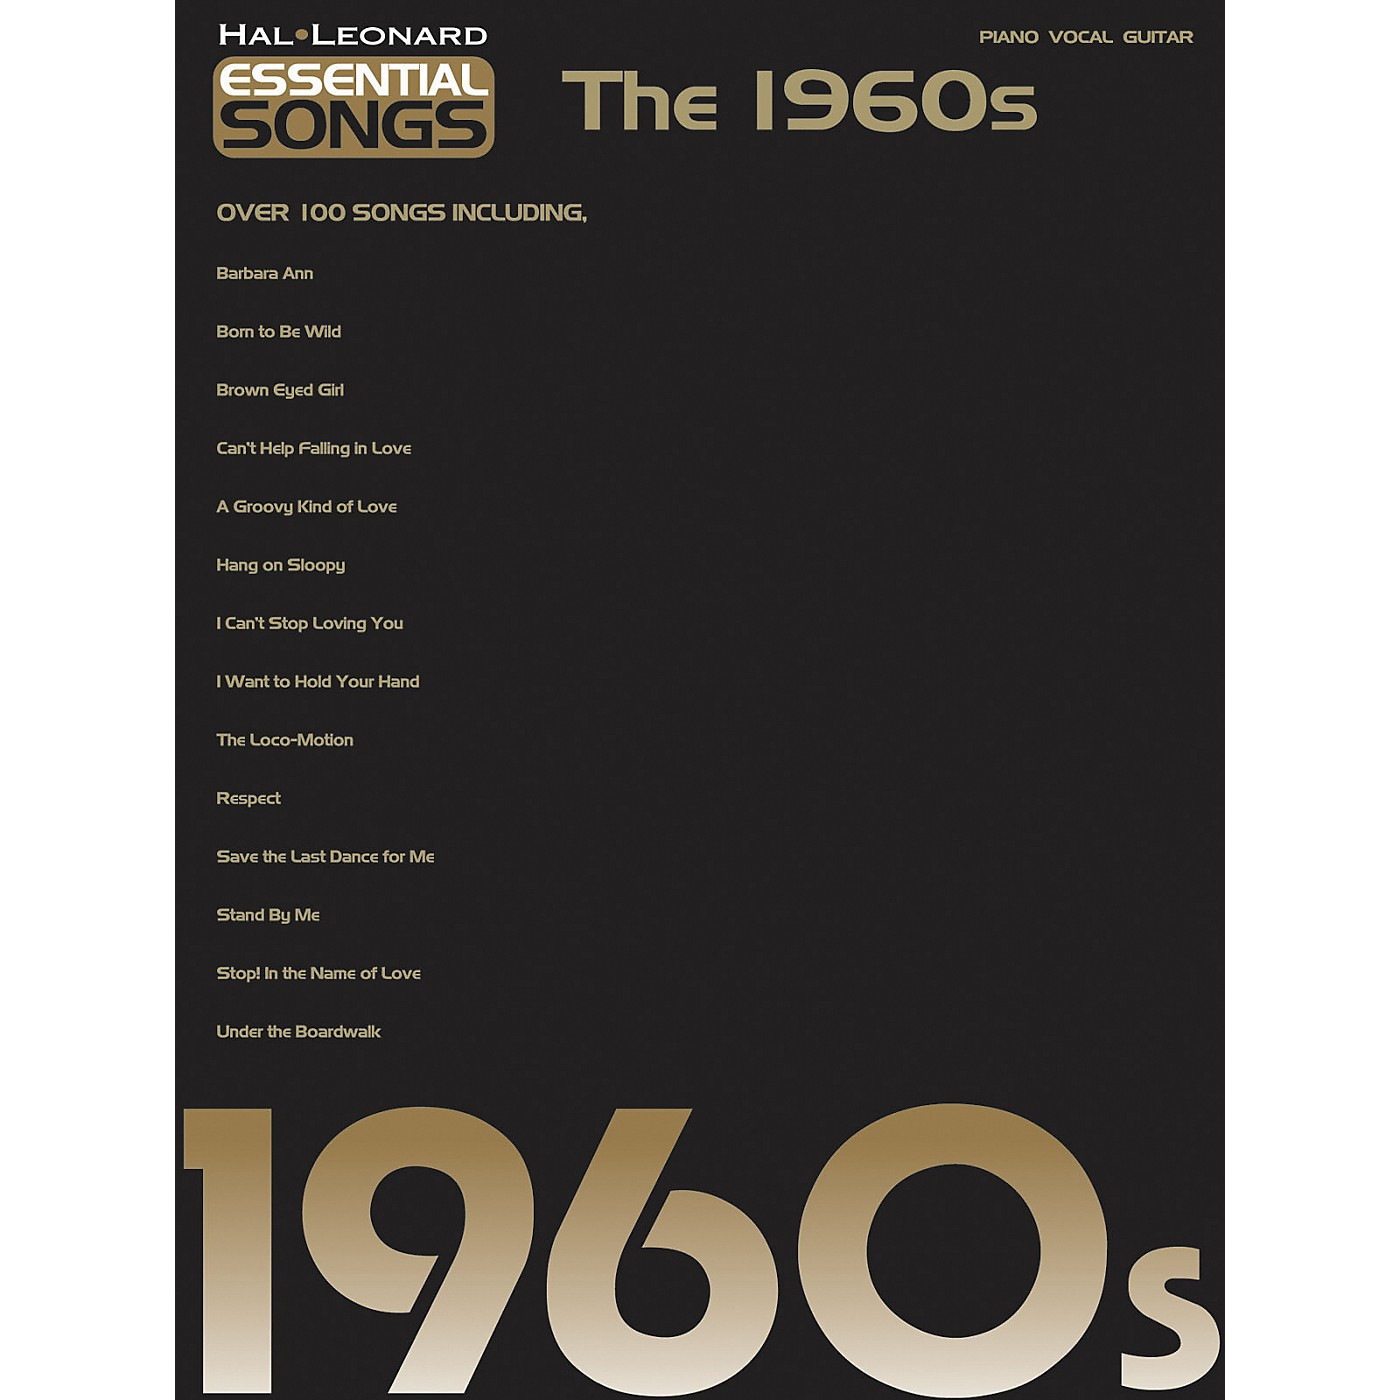 Hal Leonard Essential Songs - The 1960's Piano/Vocal/Guitar Songbook thumbnail